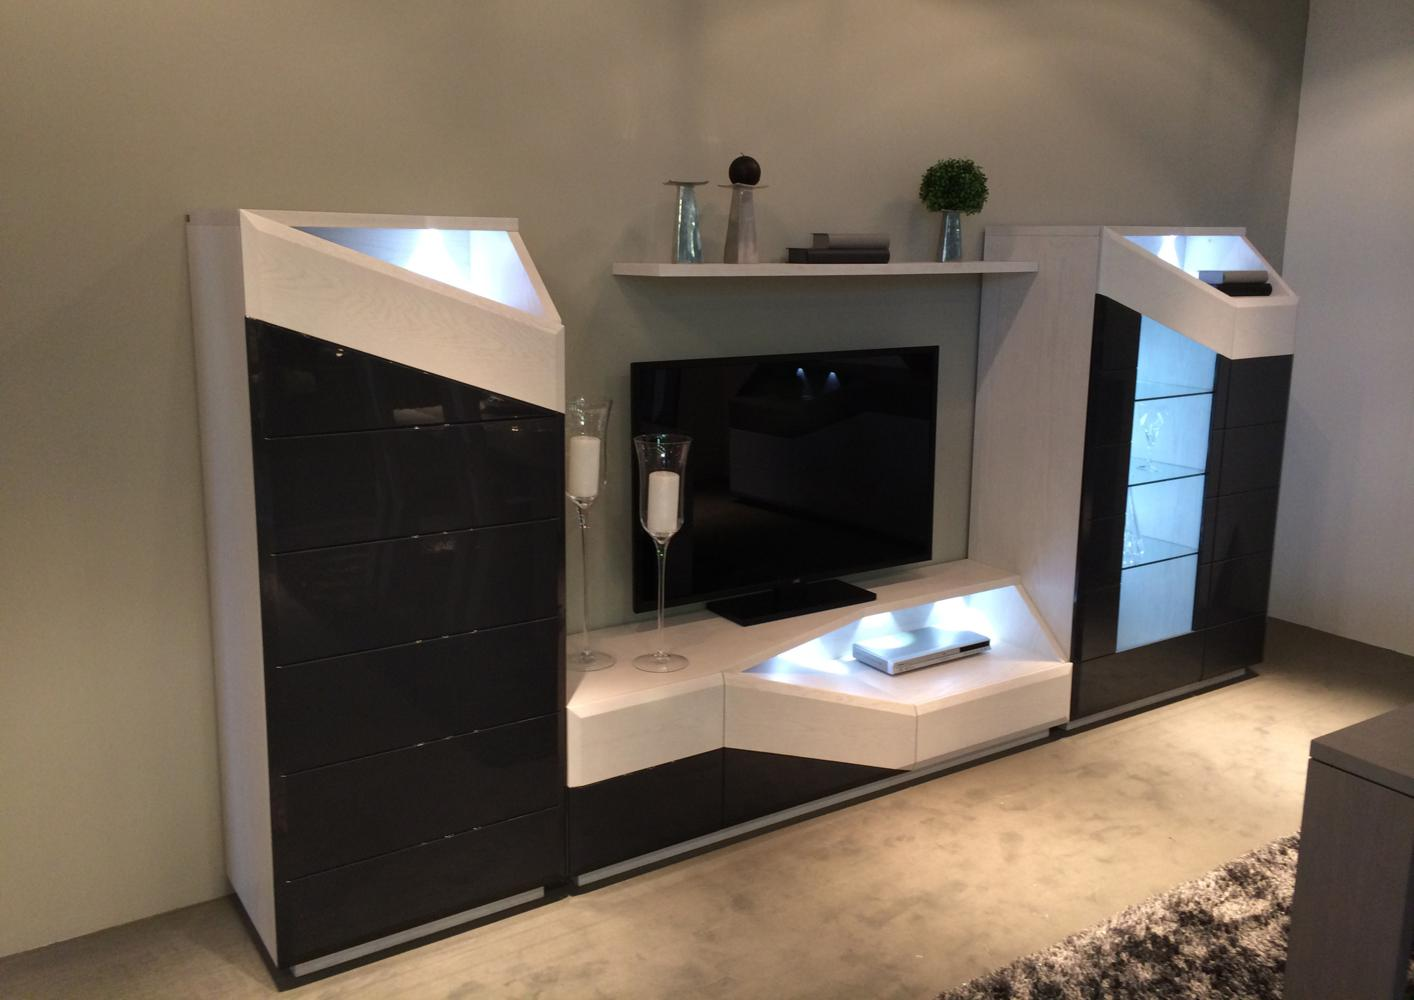 acheter votre meuble tv led laque et bois contemporain chez simeuble. Black Bedroom Furniture Sets. Home Design Ideas